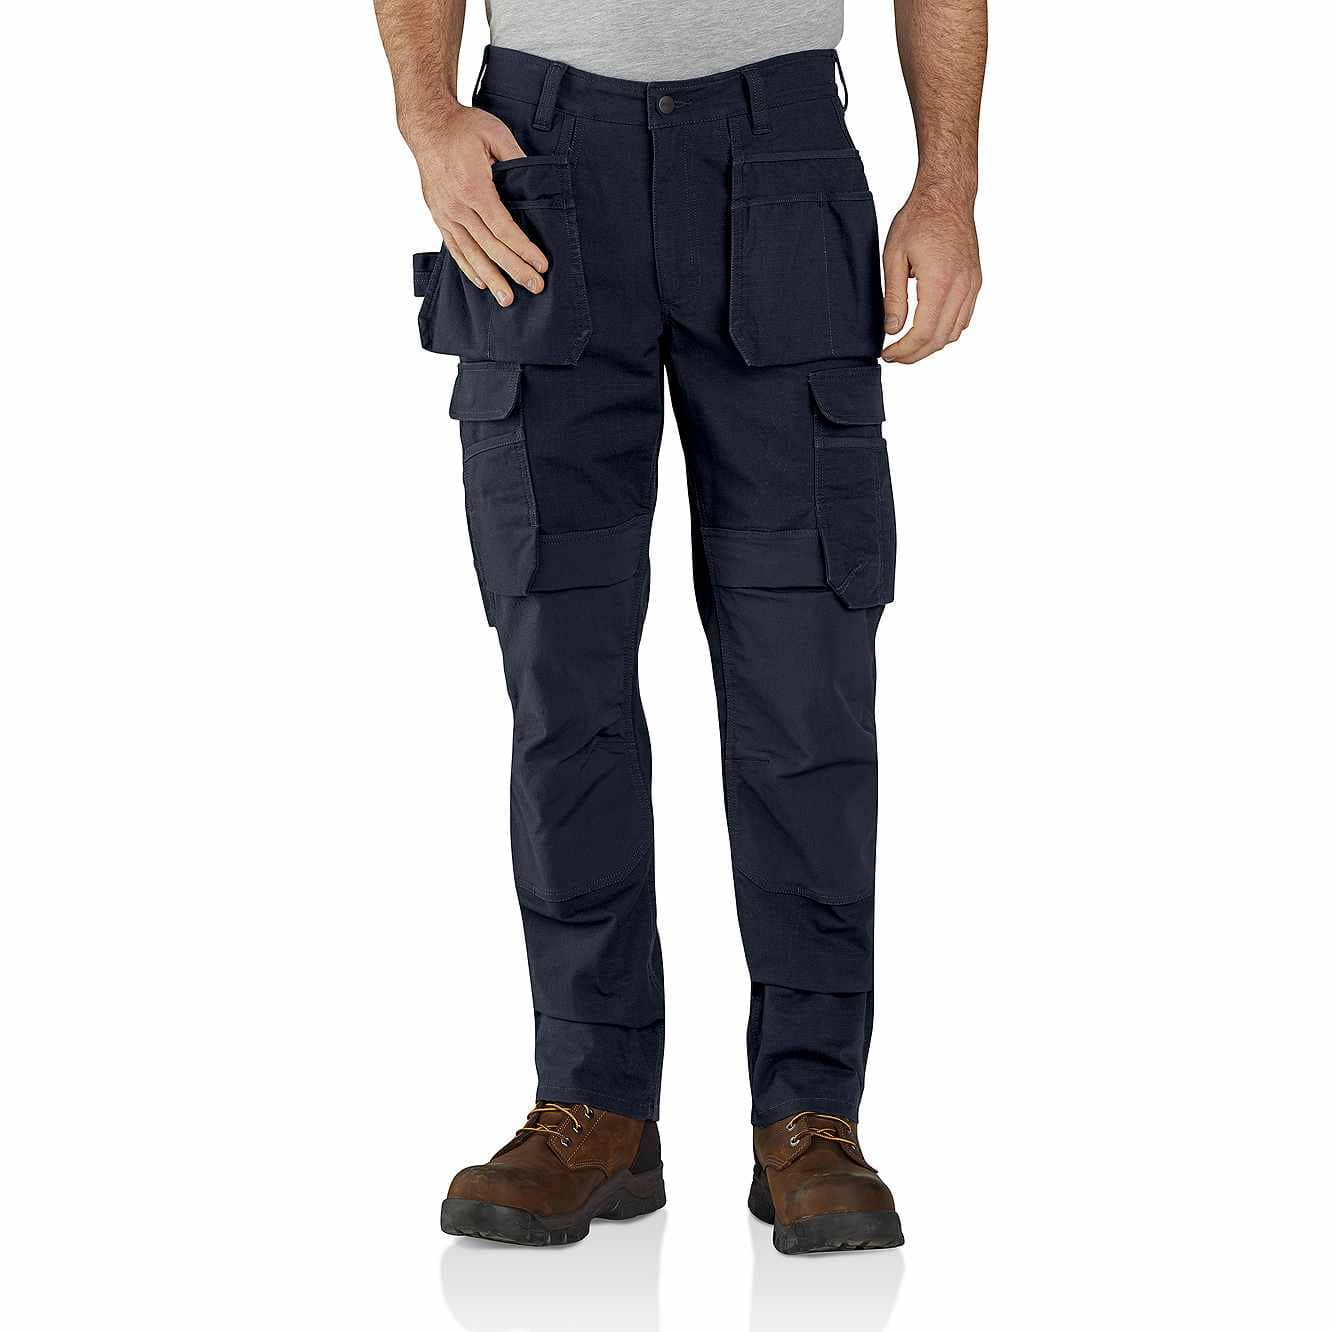 Picture of Rugged Flex Steel Cargo Multi-Pocket Pant in Navy